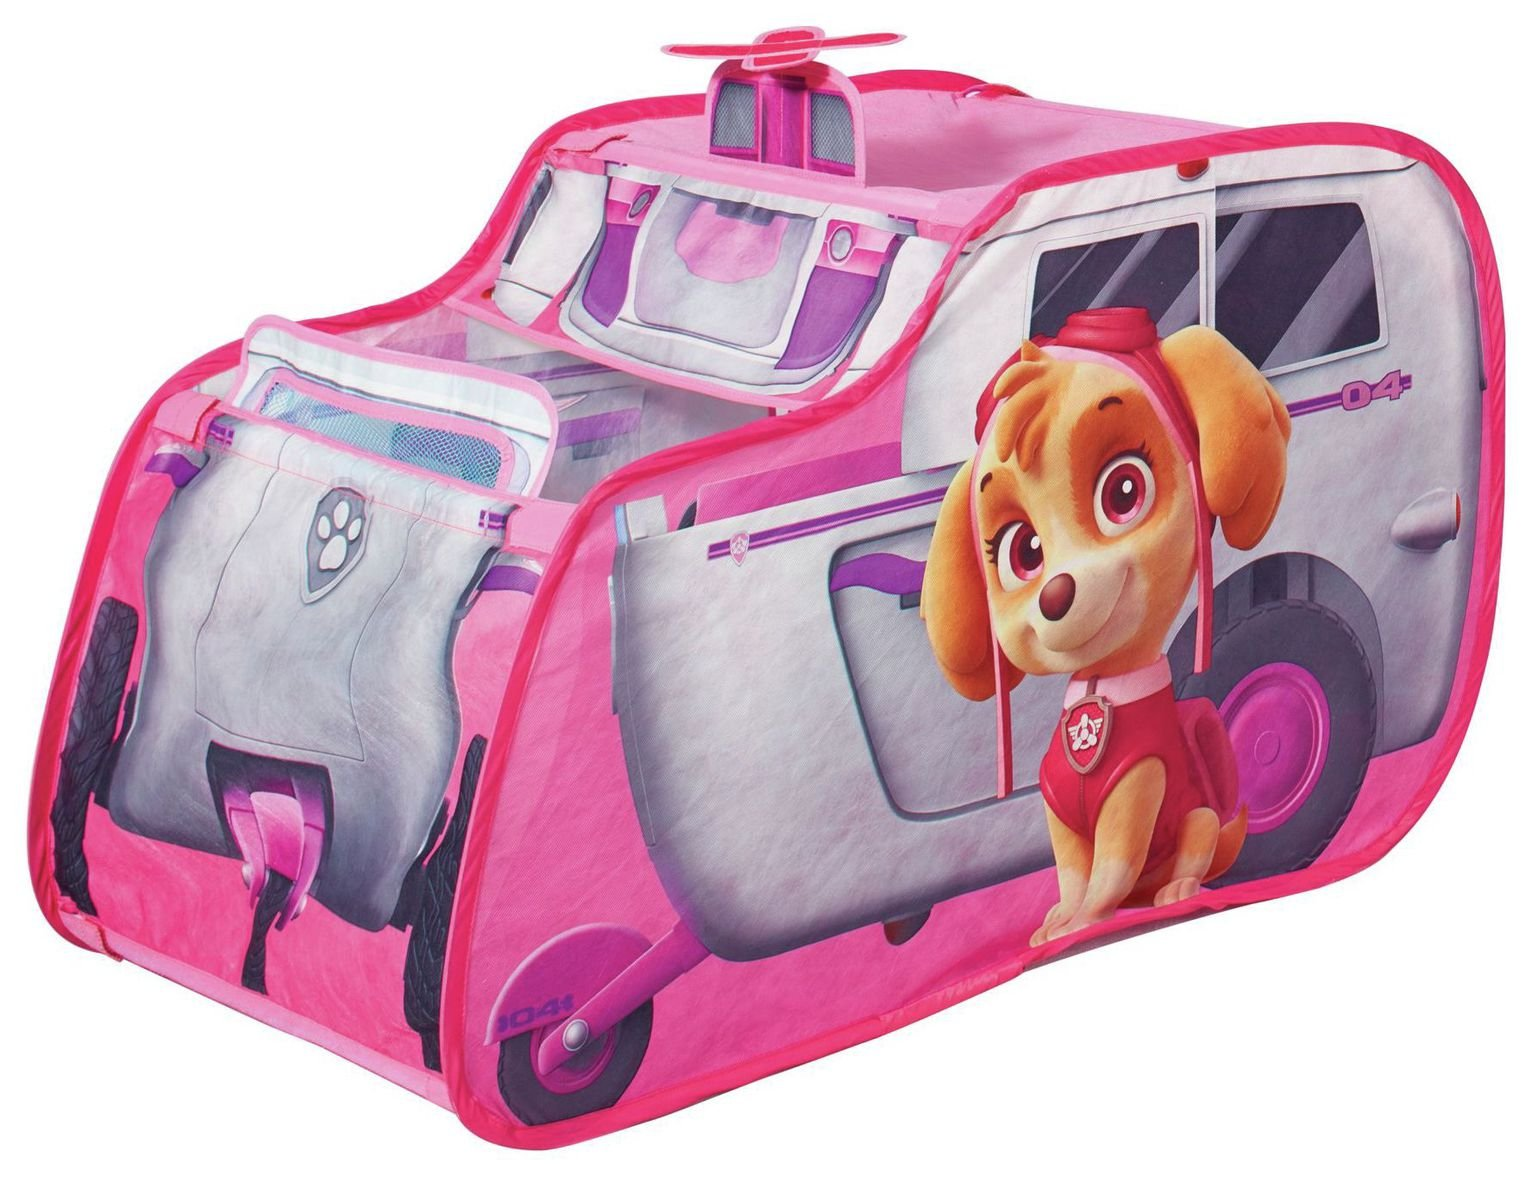 PAW Patrol Skye's Helicopter Pop Up Playtent from Paw patrol